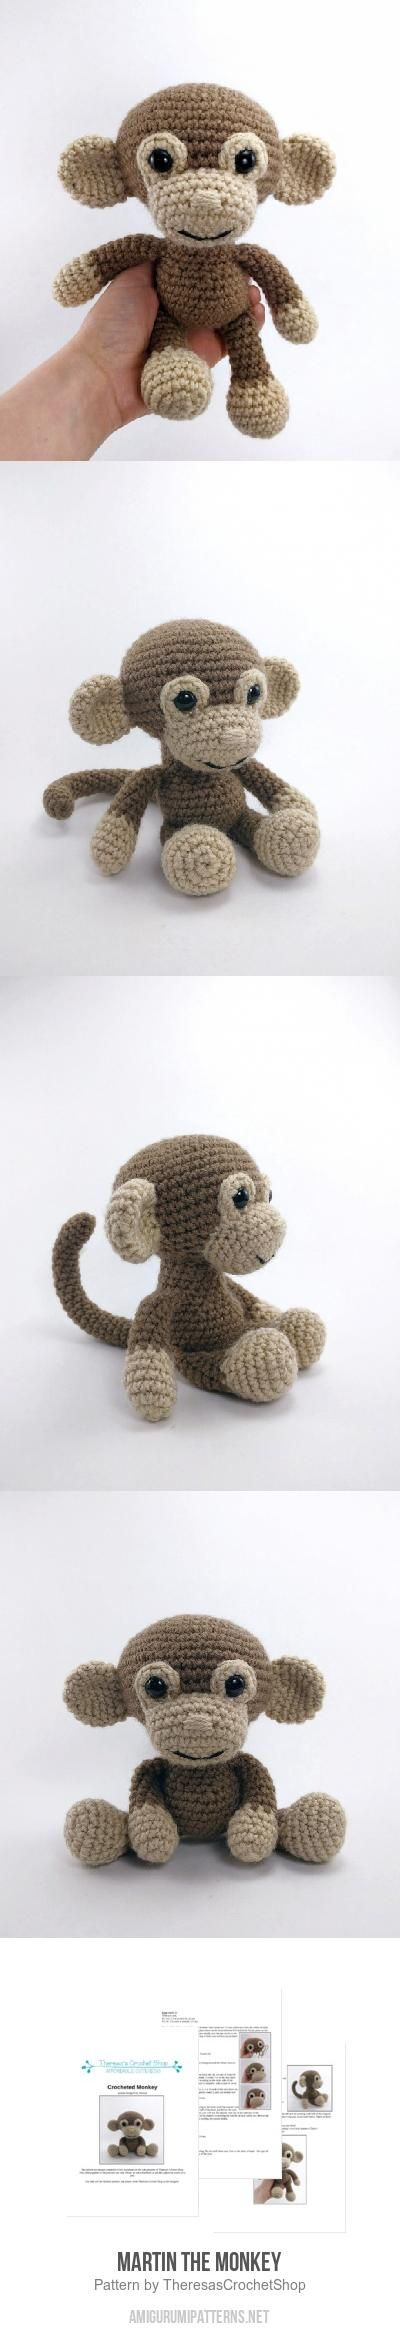 Martin the Monkey amigurumi pattern by Theresas Crochet Shop ...